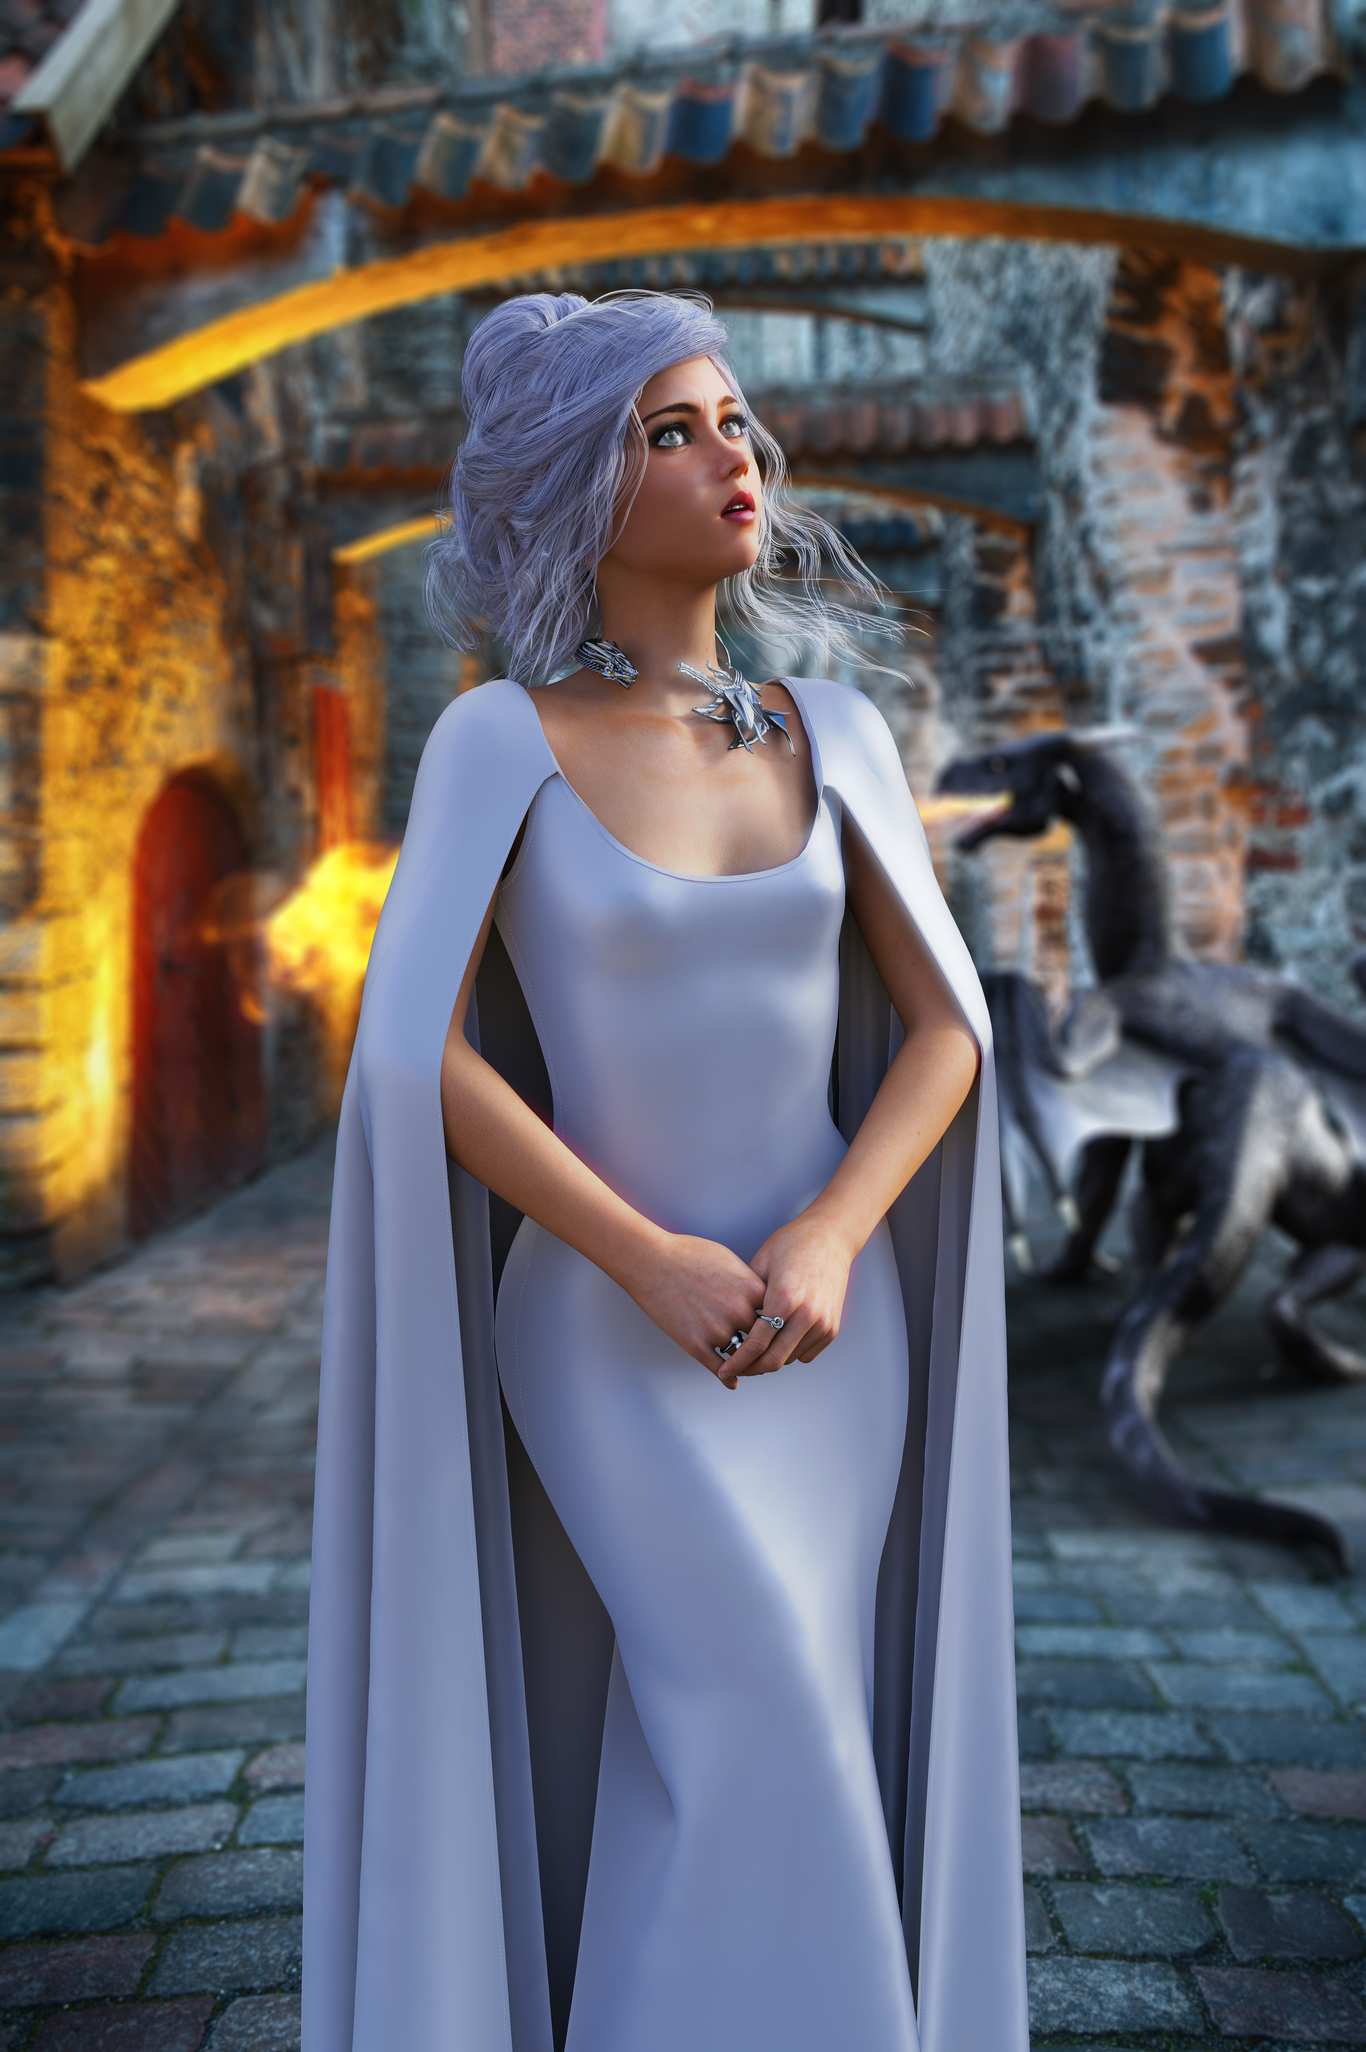 Jsgknight mother of dragons 1 7a01d607 usyj